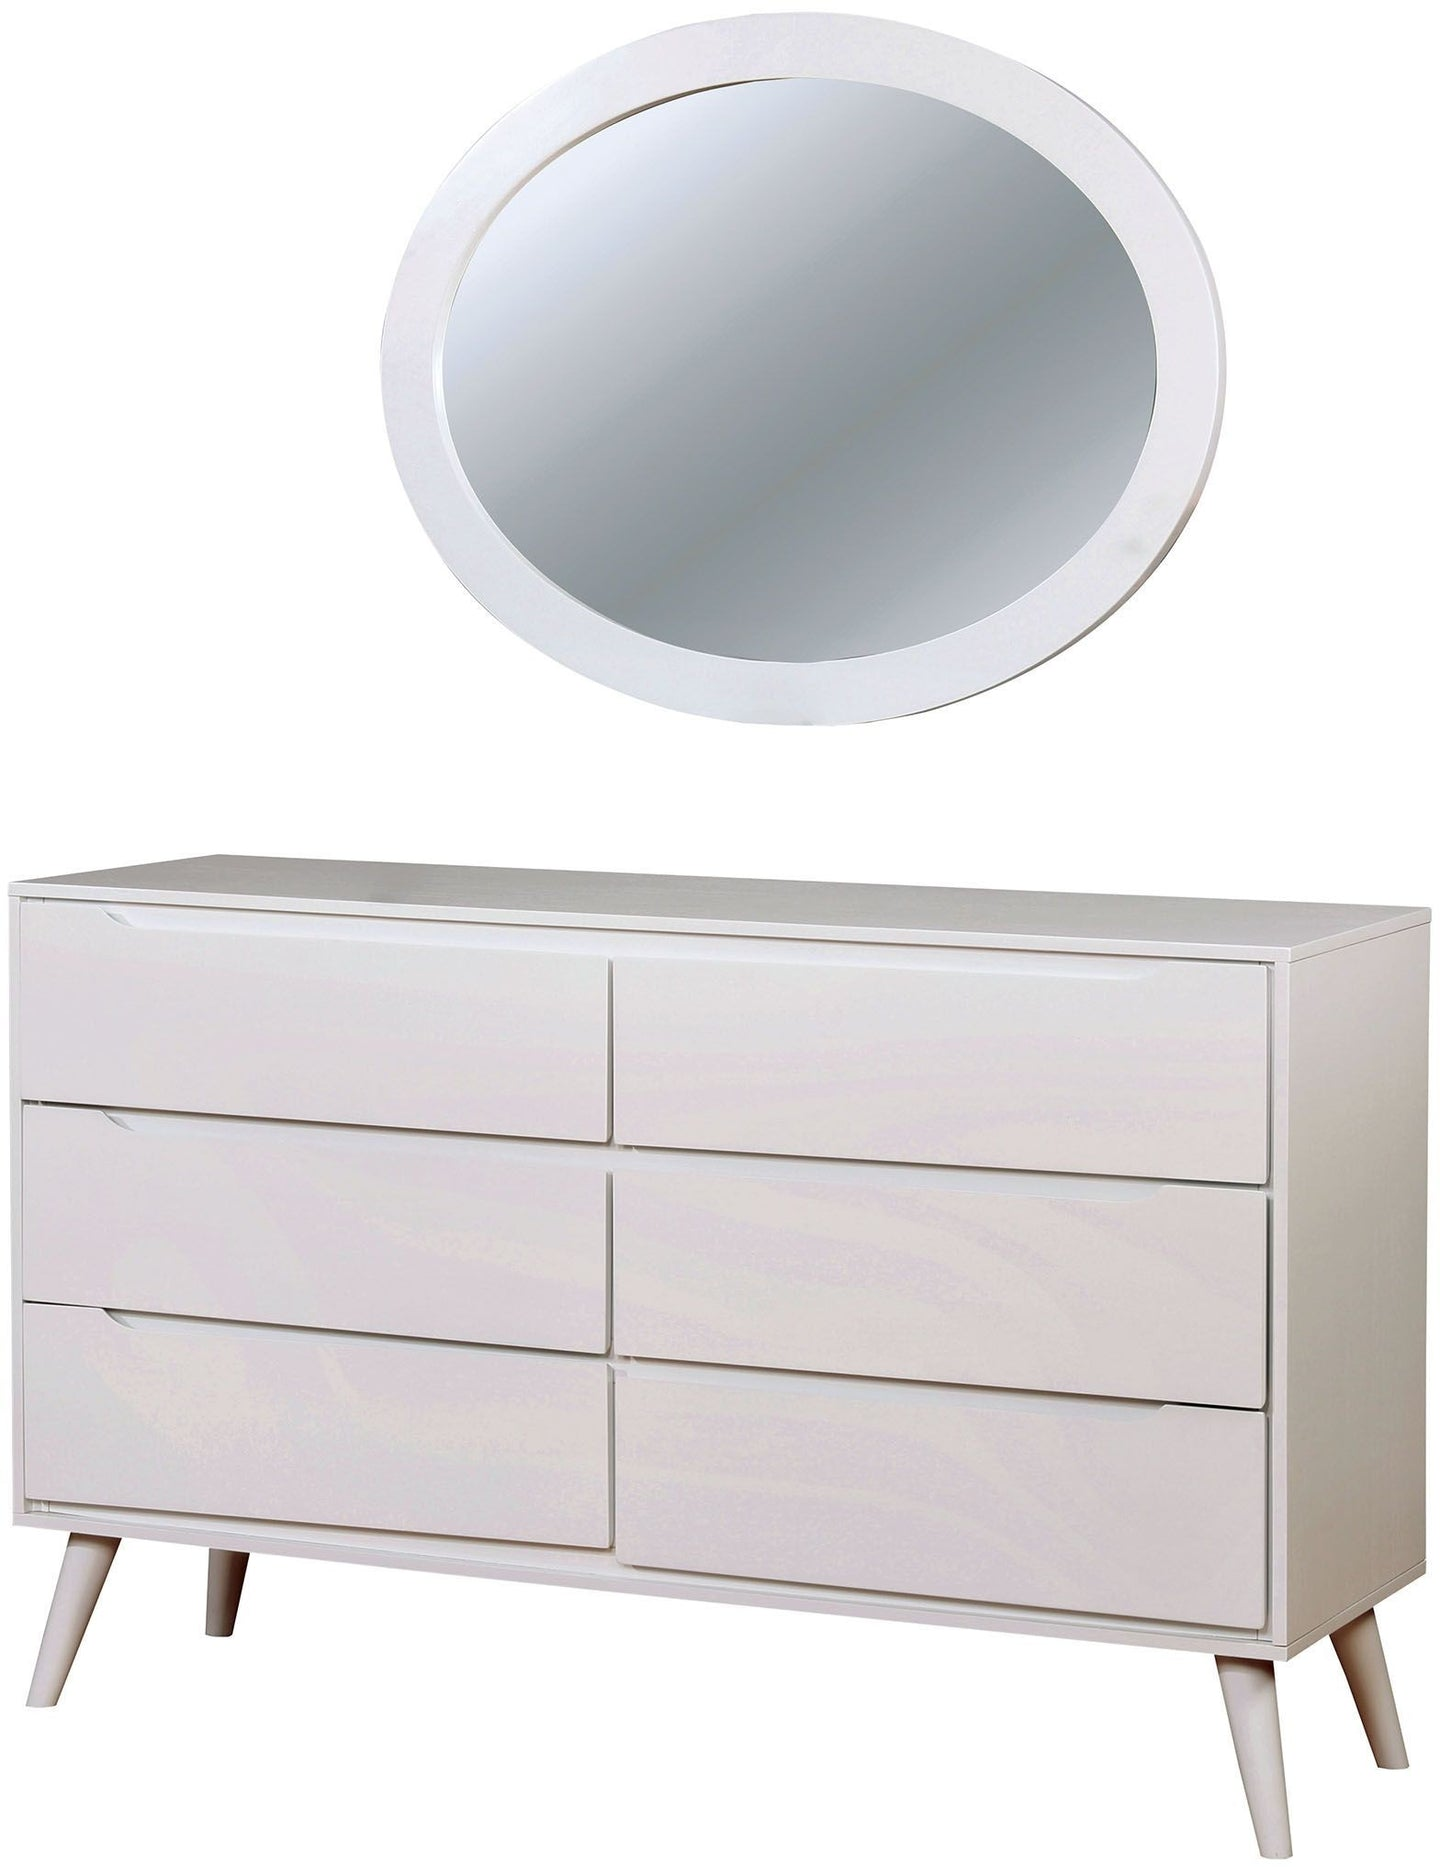 Furniture of America Lennart II White Dresser With Oval Shape Mirror